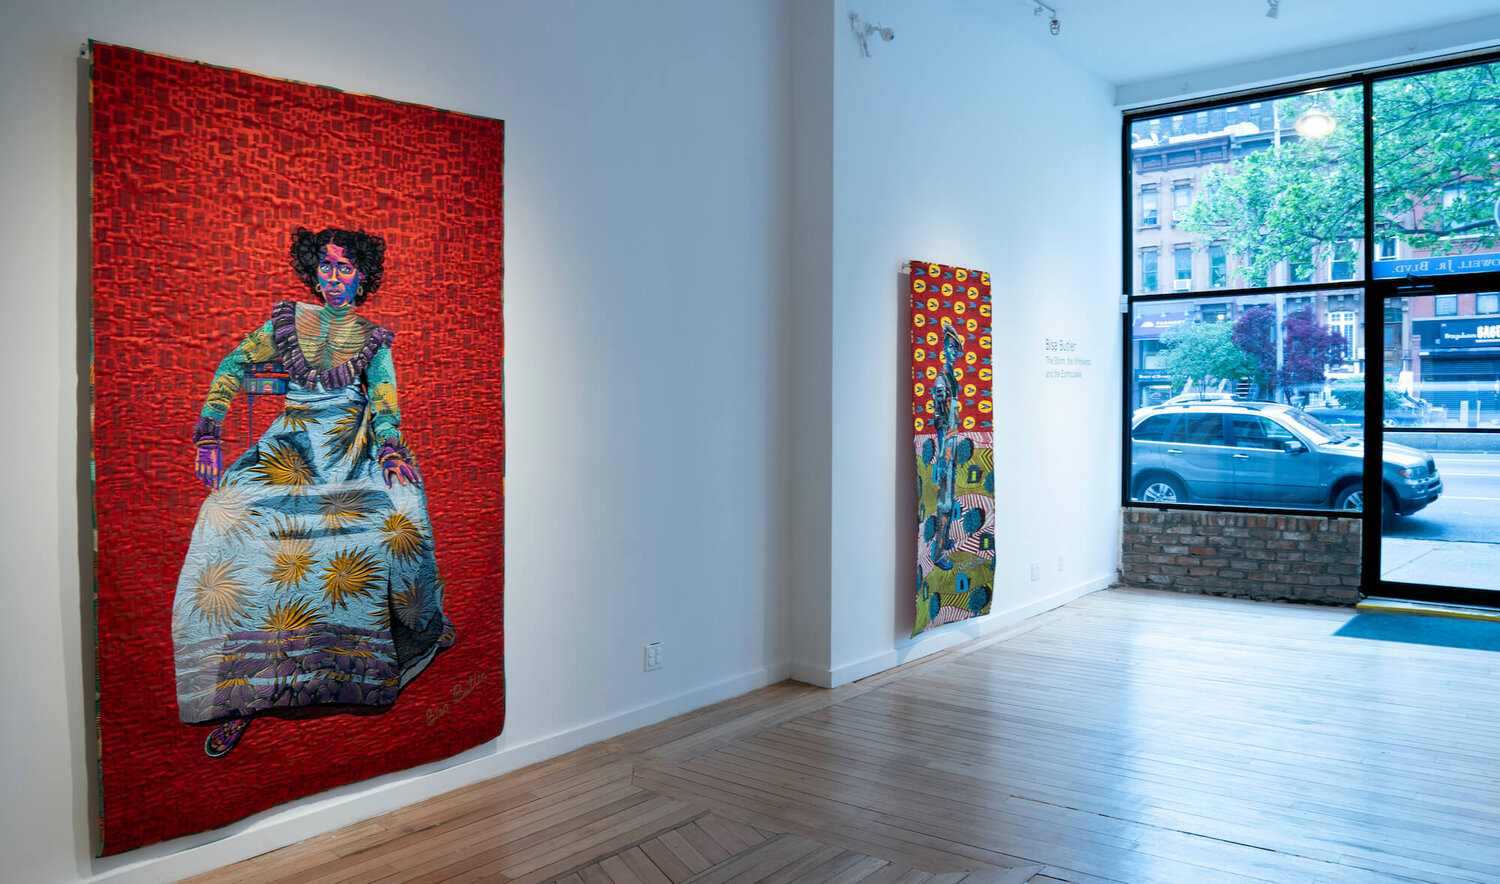 Installation view of Butler's work in Claire Oliver Gallery